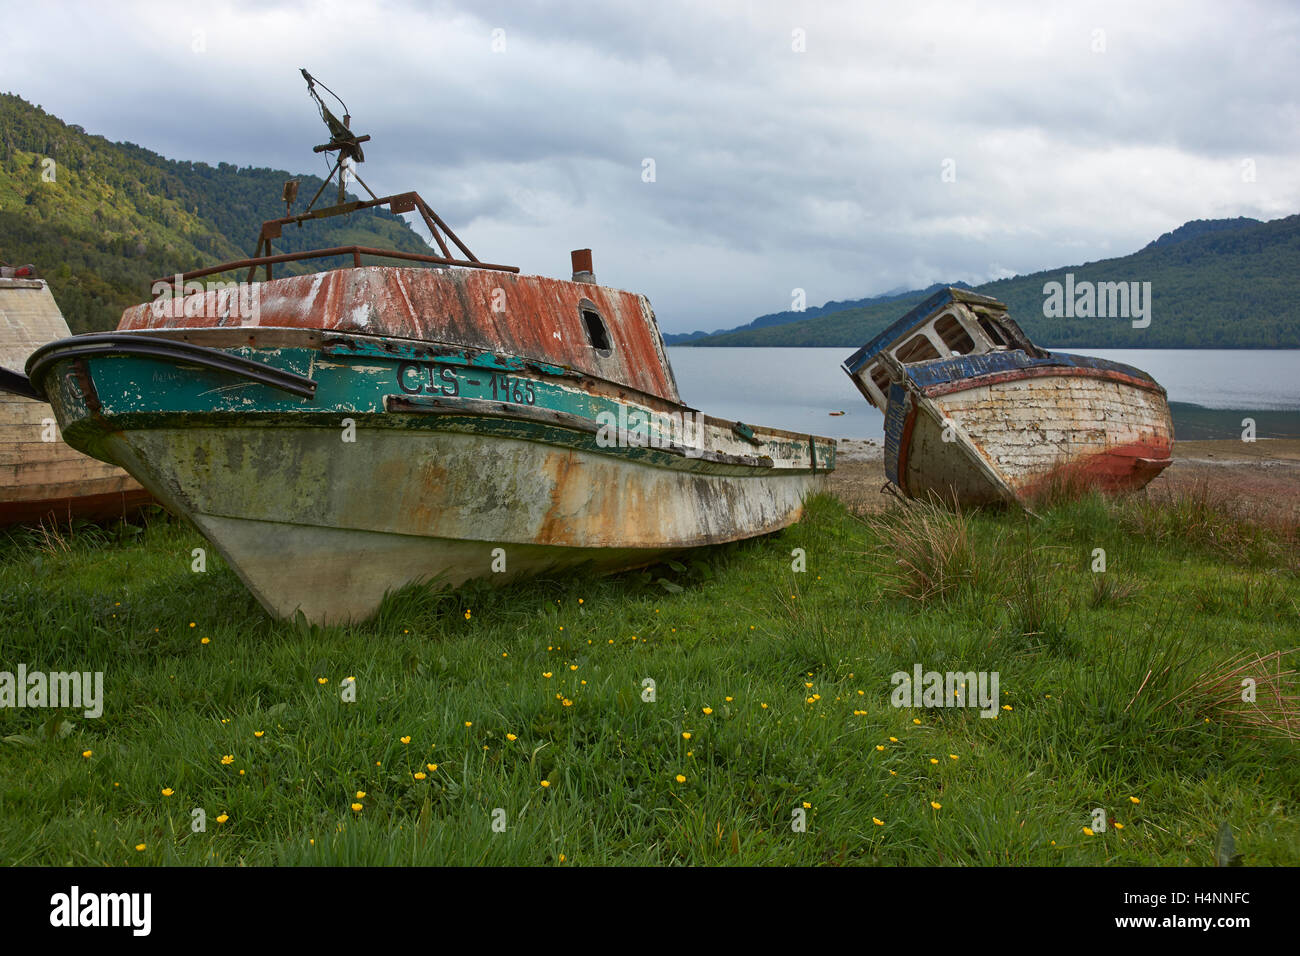 Fishing boat drawn up on the beach at Puyuhuapi along the Carretera Austral in Chilean Patagonia. - Stock Image